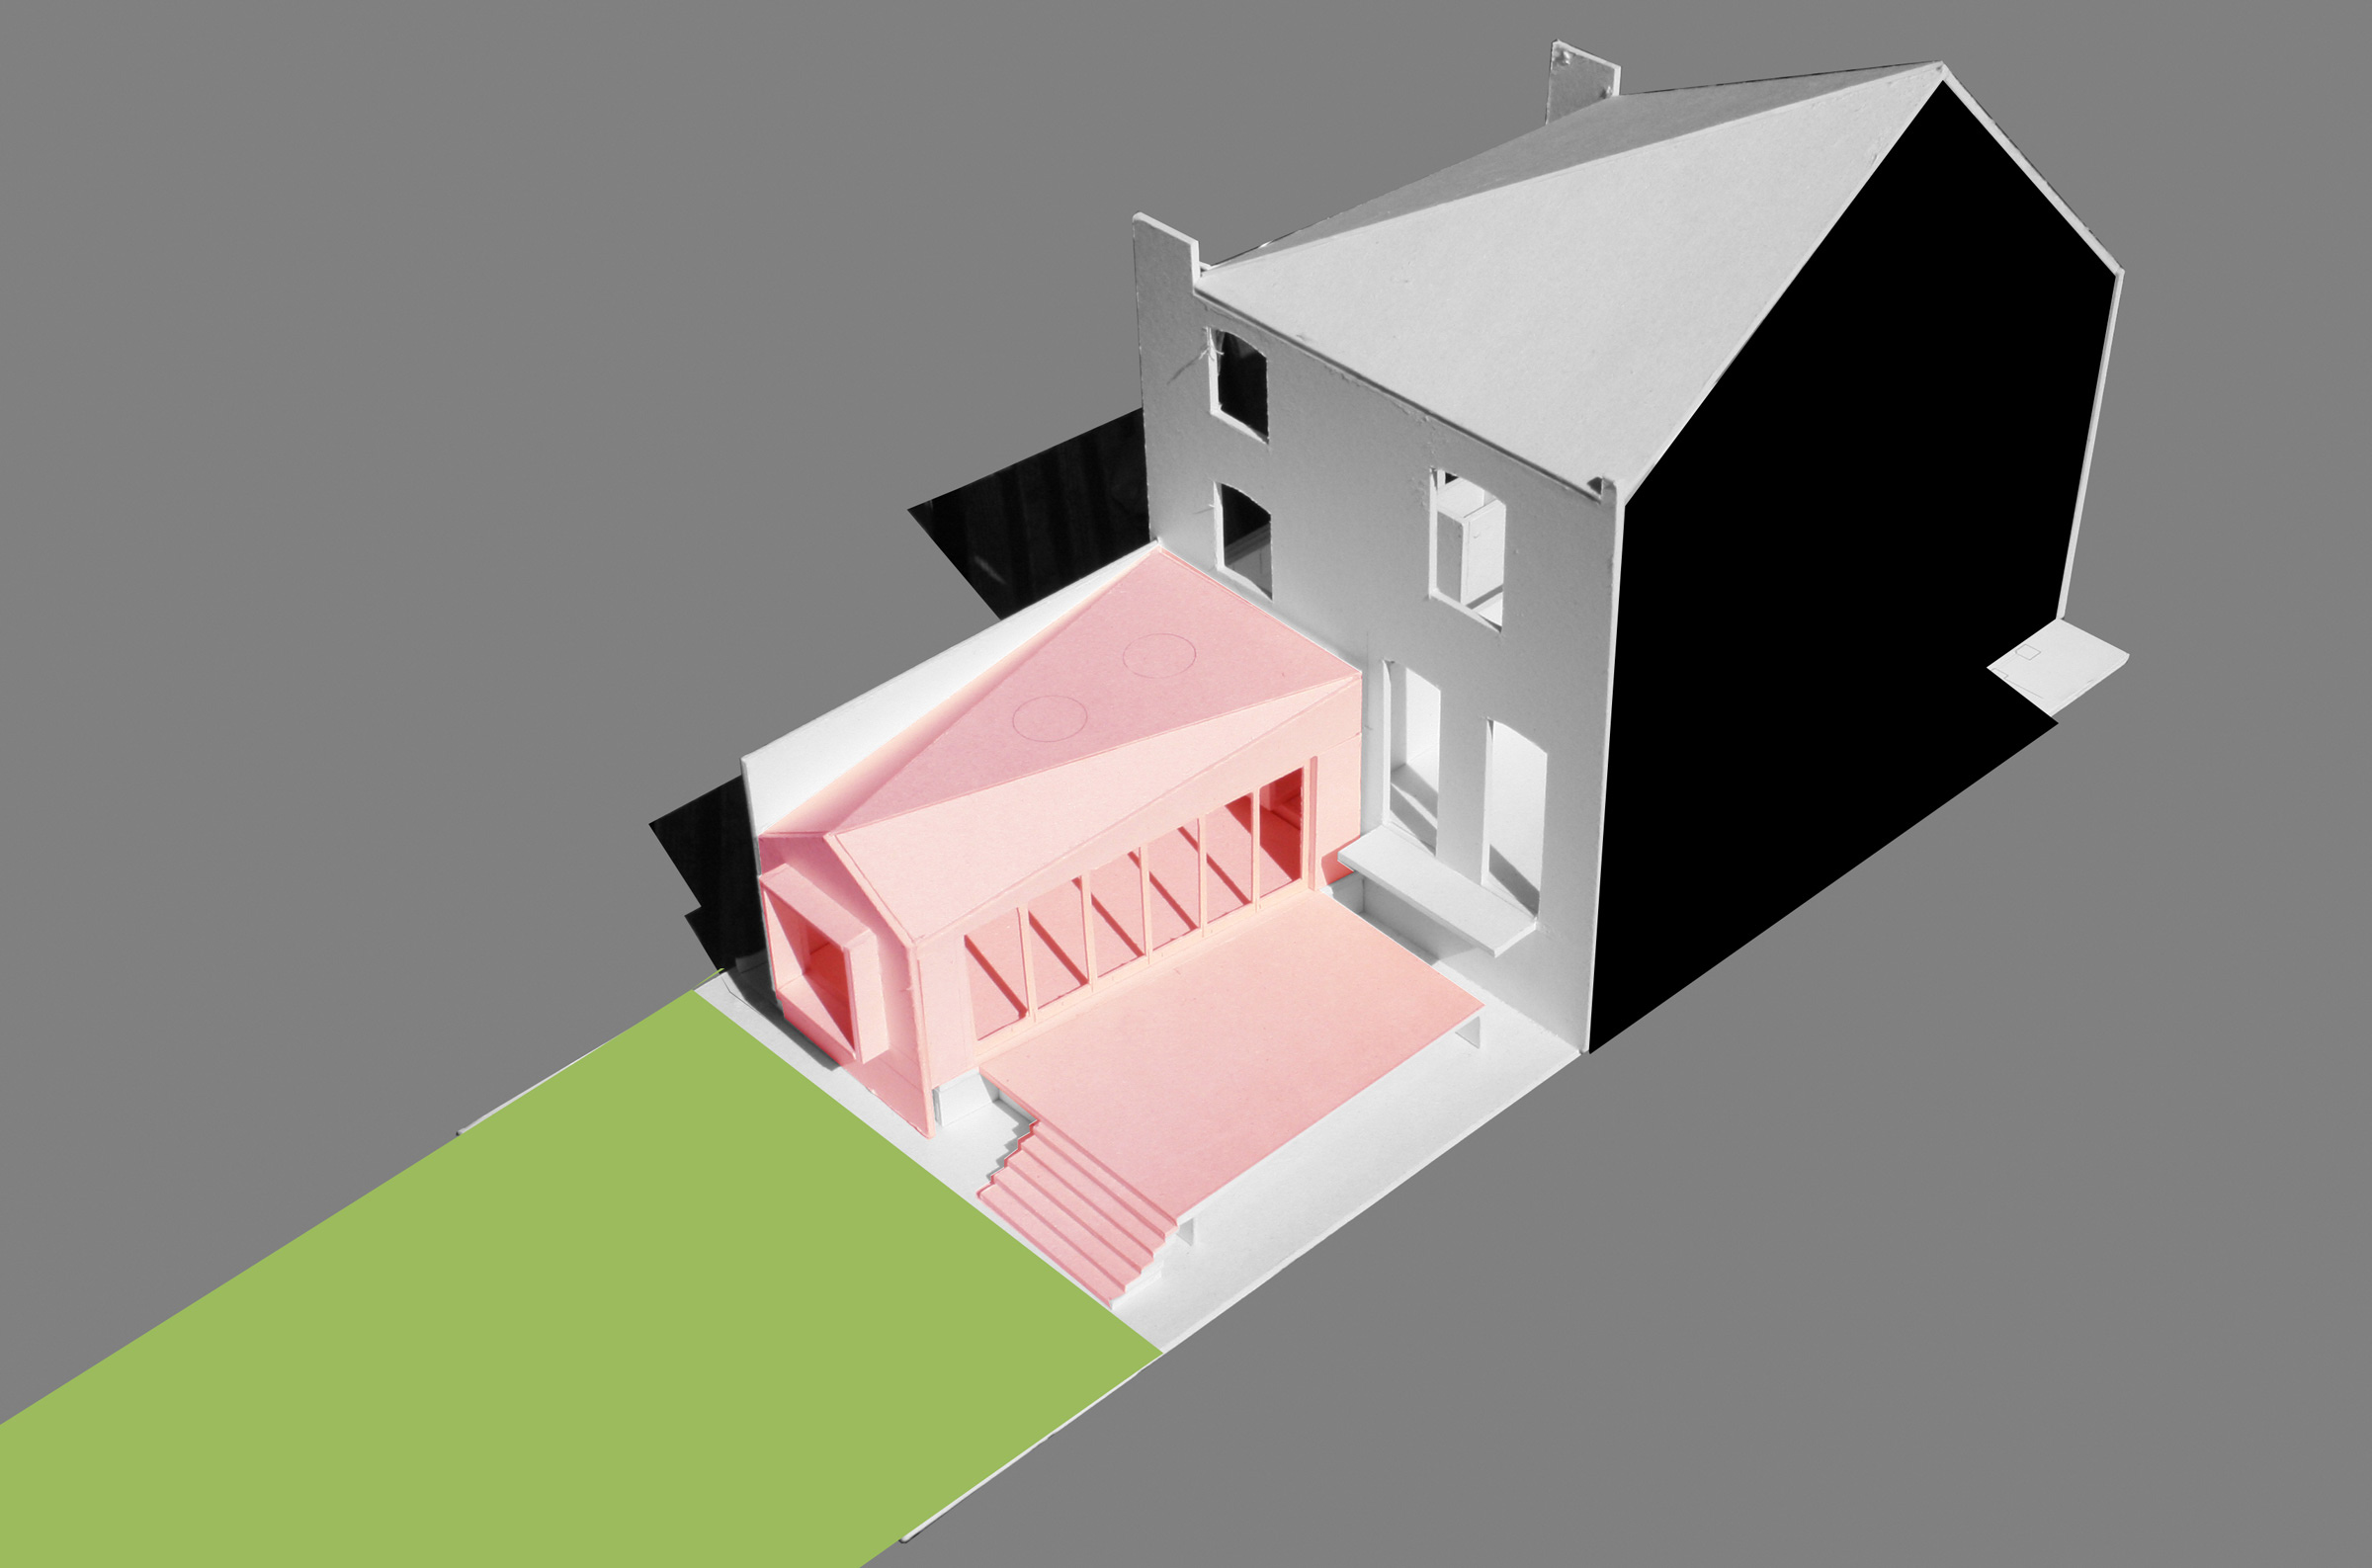 24 house model view